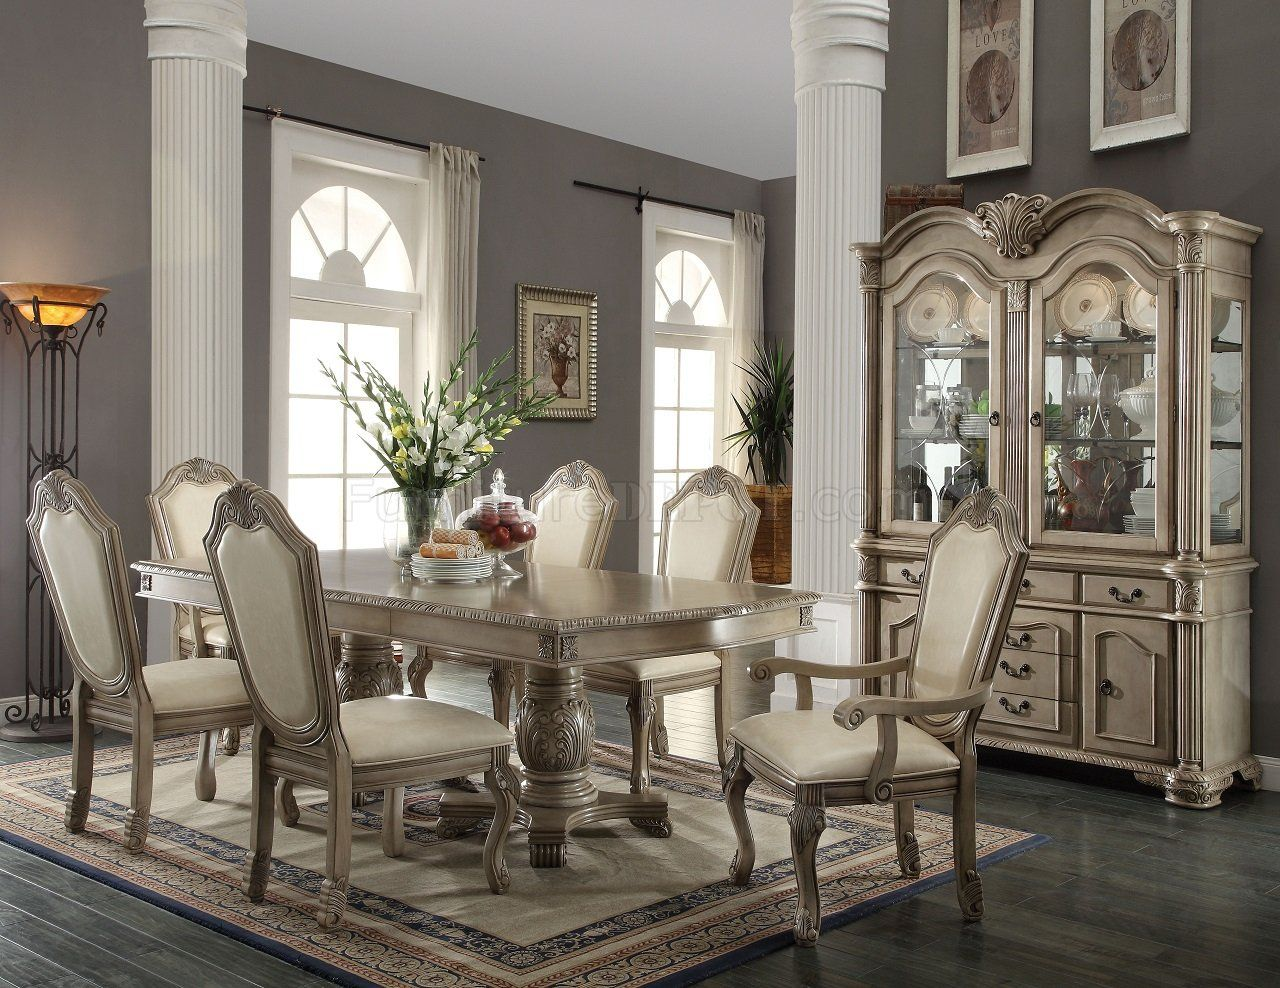 formal dining room set. Formal Dining Room sets  Reasons Why Tables Offer More than Just a Ambience